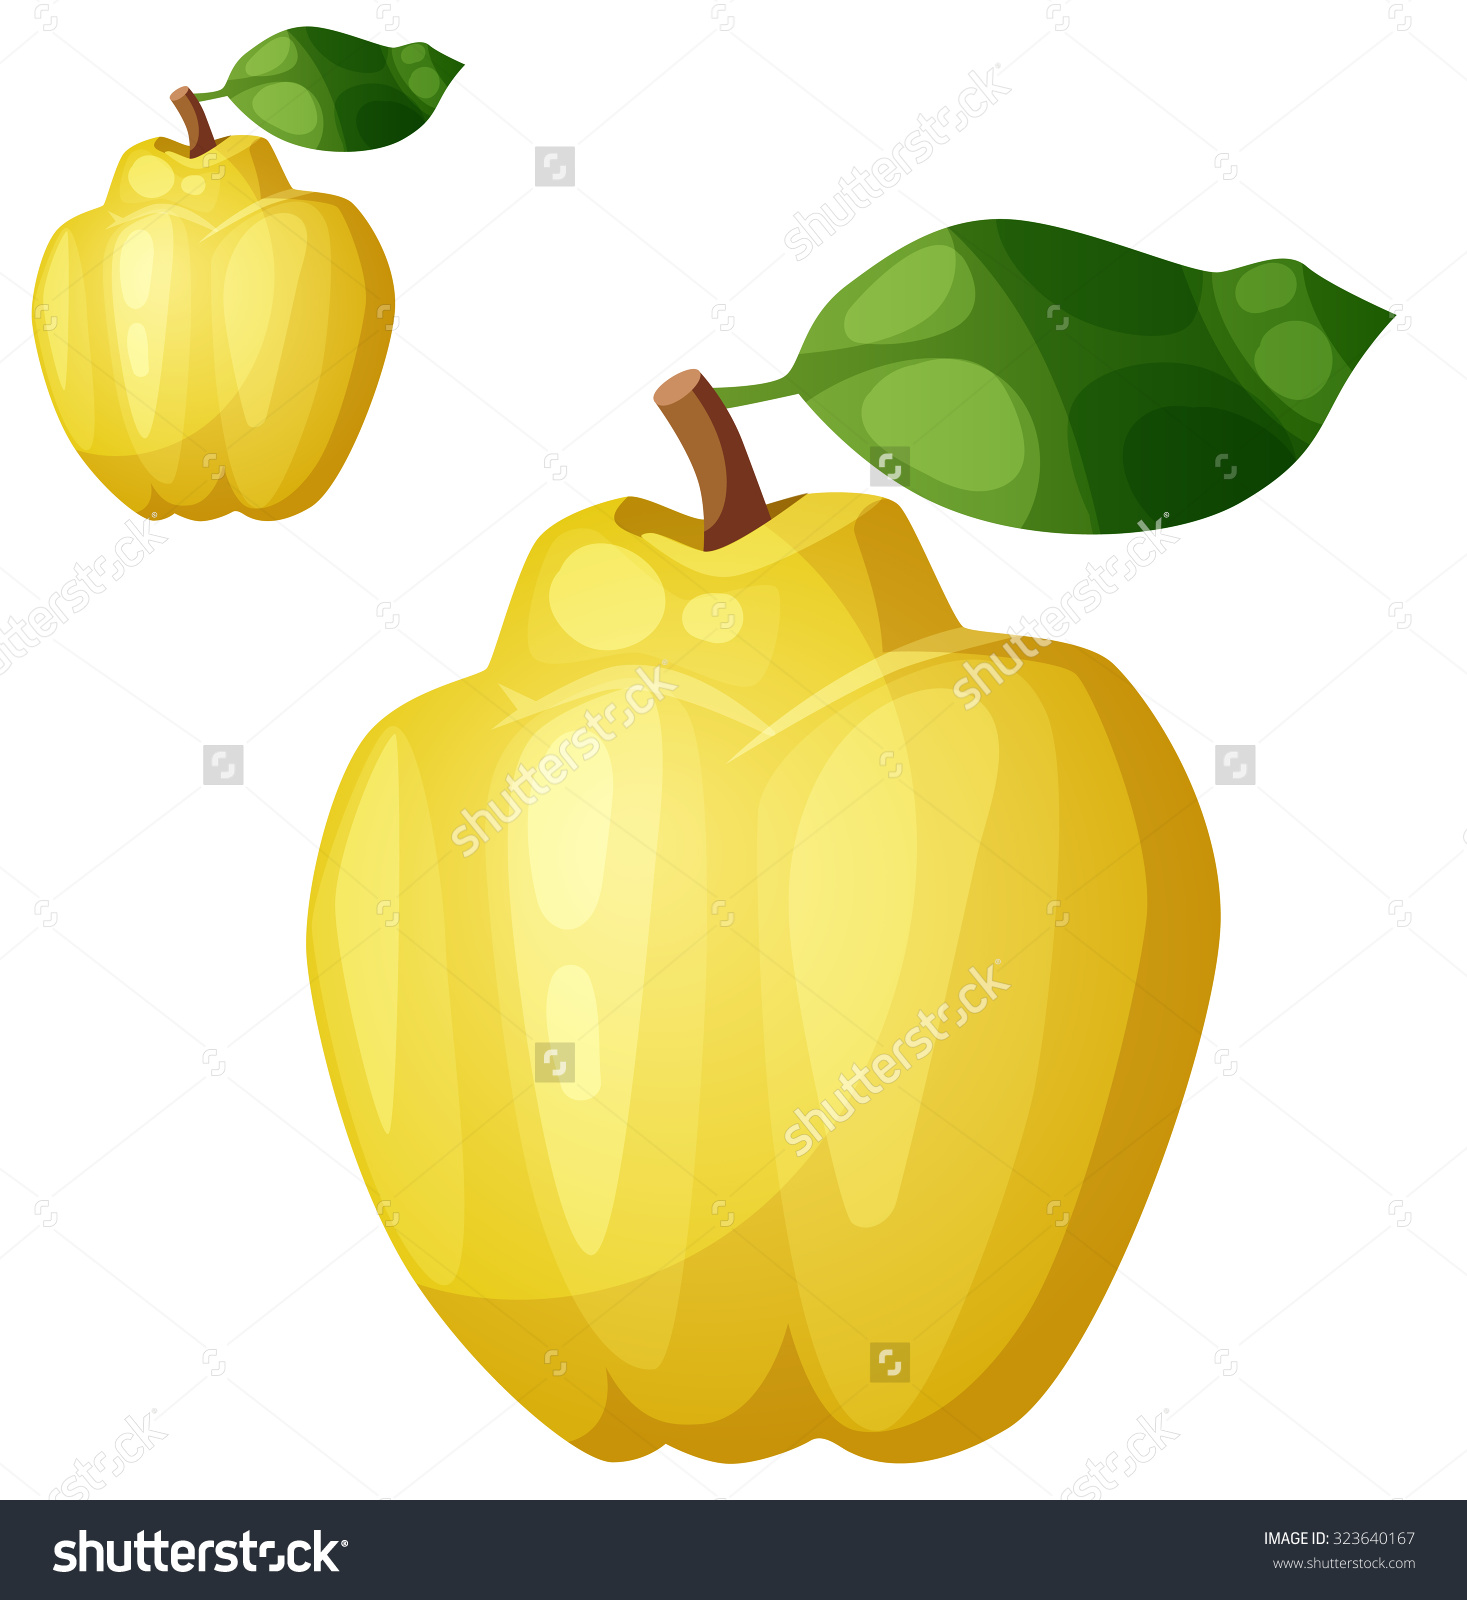 Quince Fruit Cartoon Vector Icon Isolated Stock Vector 323640167.